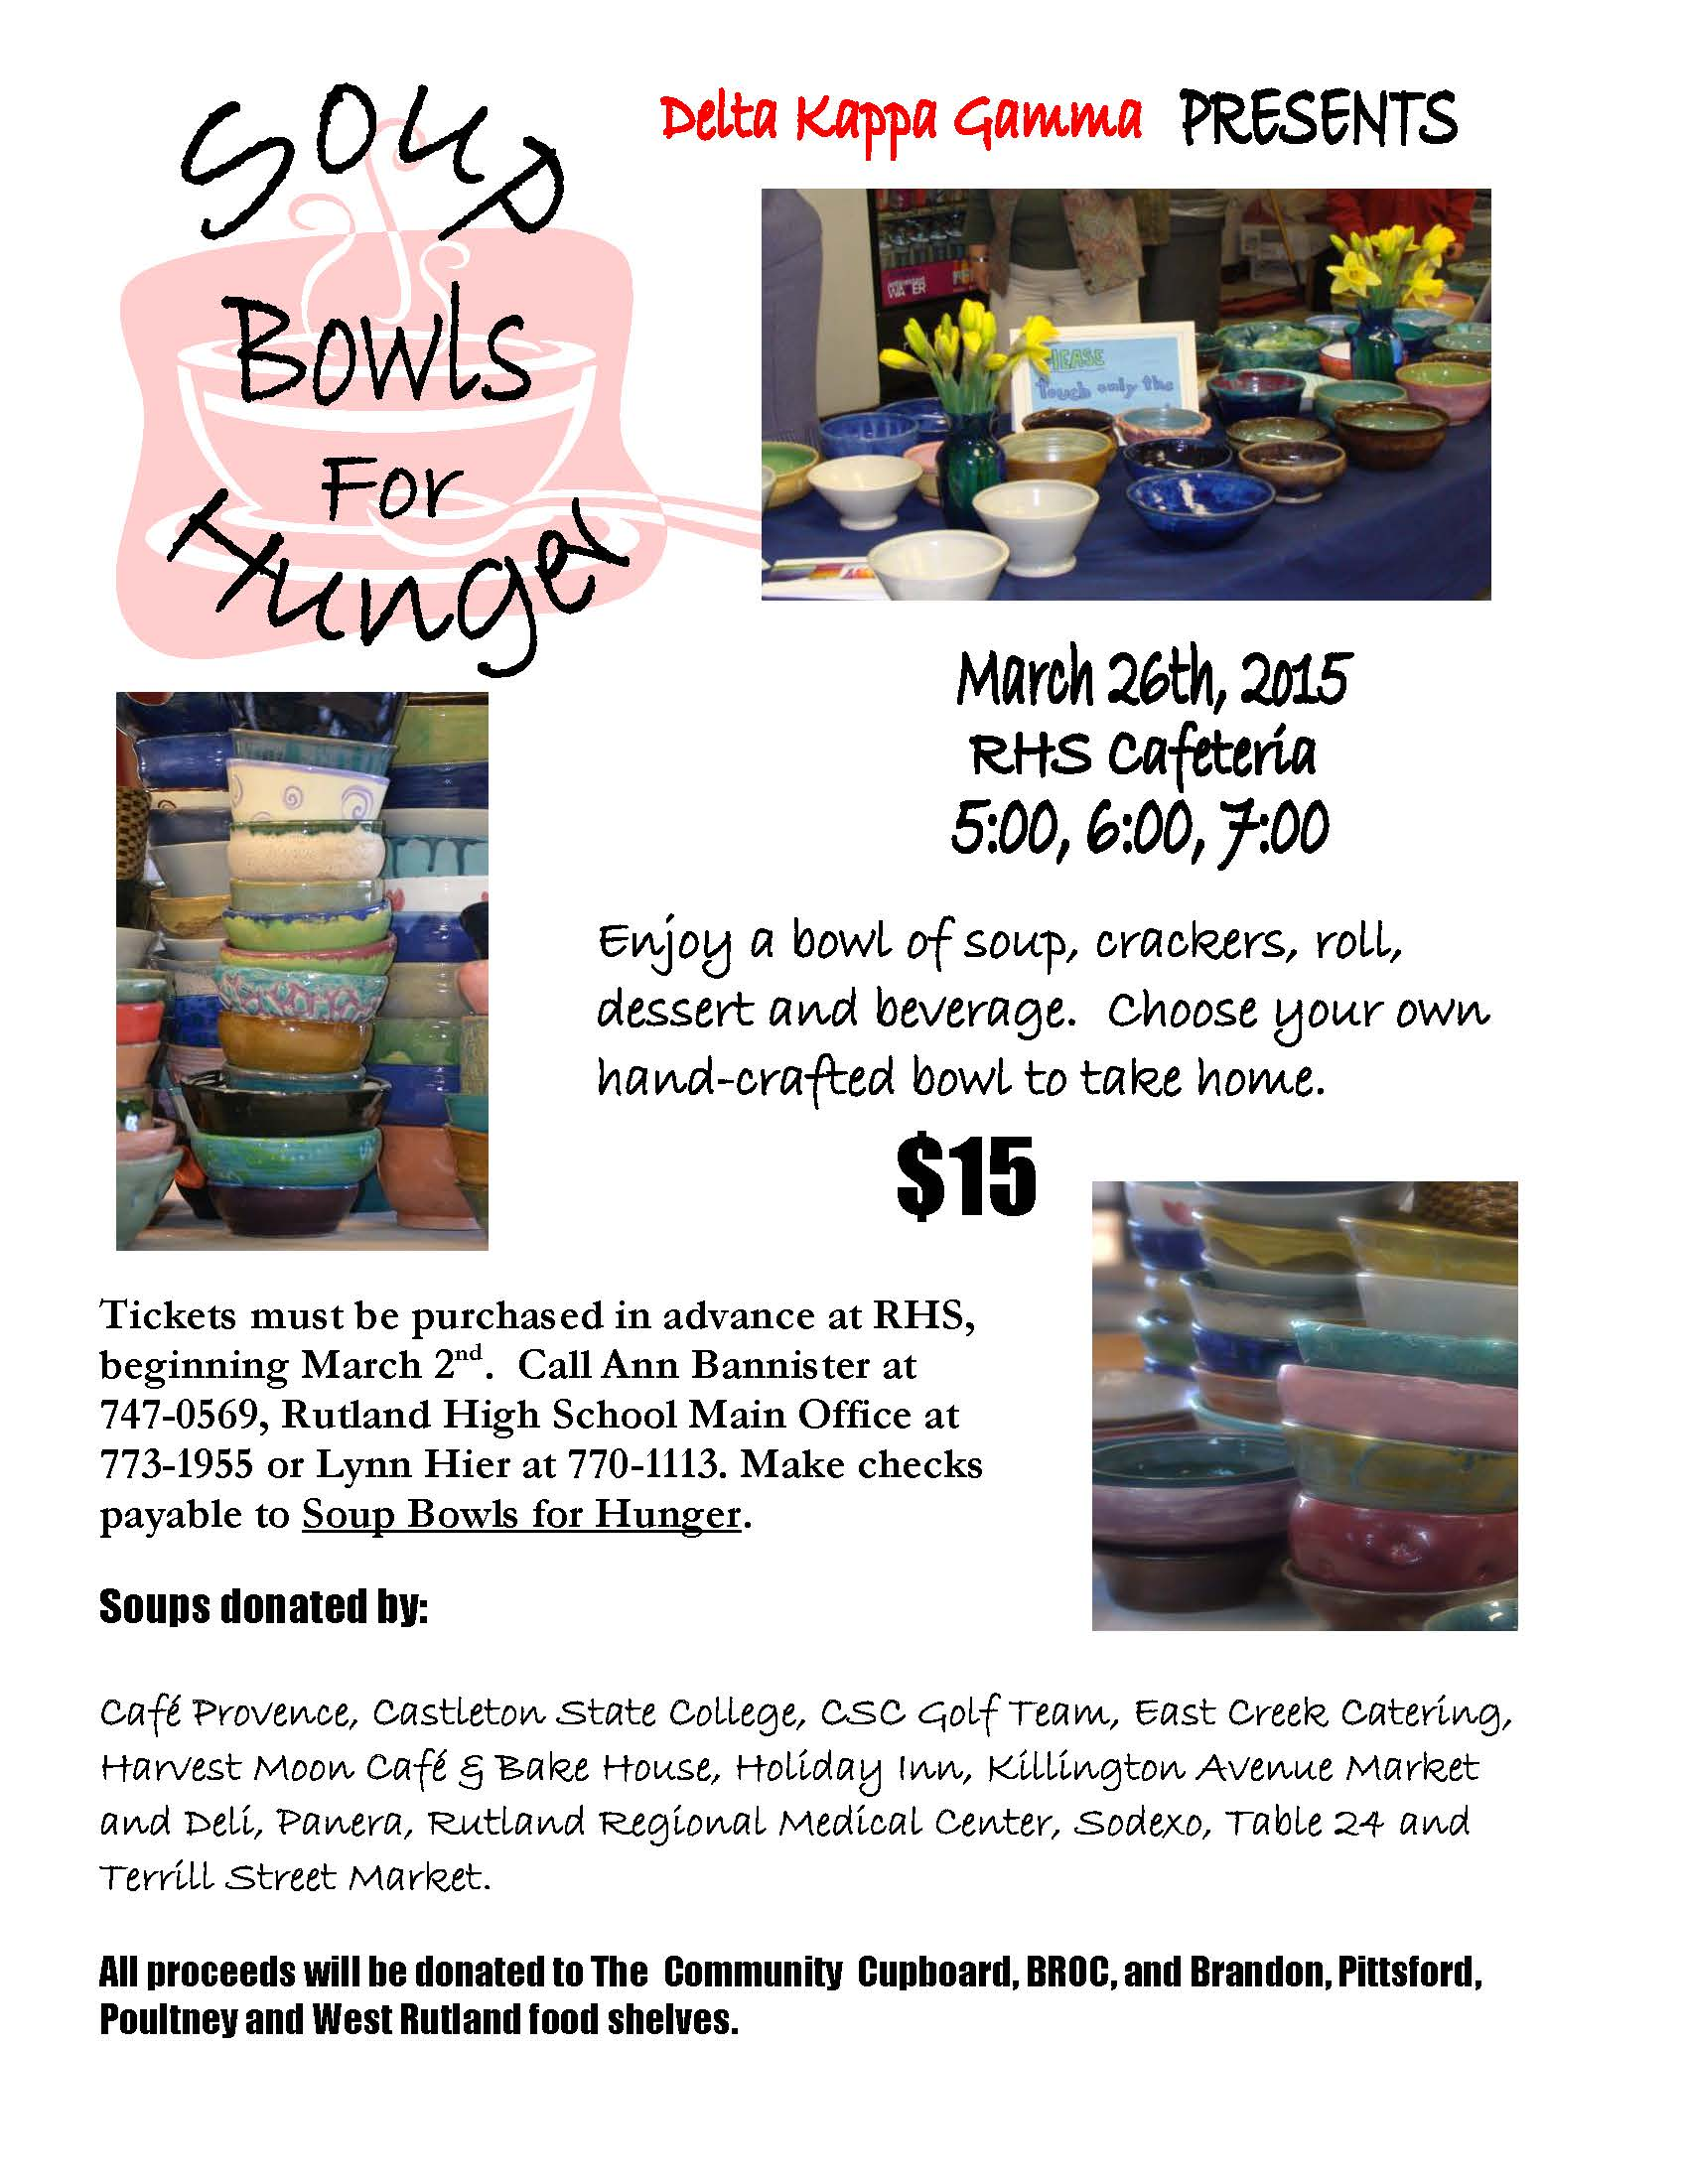 Soup bowls for hunger rutland region chamber of commerce the ninth annual soup bowls for hunger will be held on thursday march 26th in the rutland high school cafeteria solutioingenieria Image collections